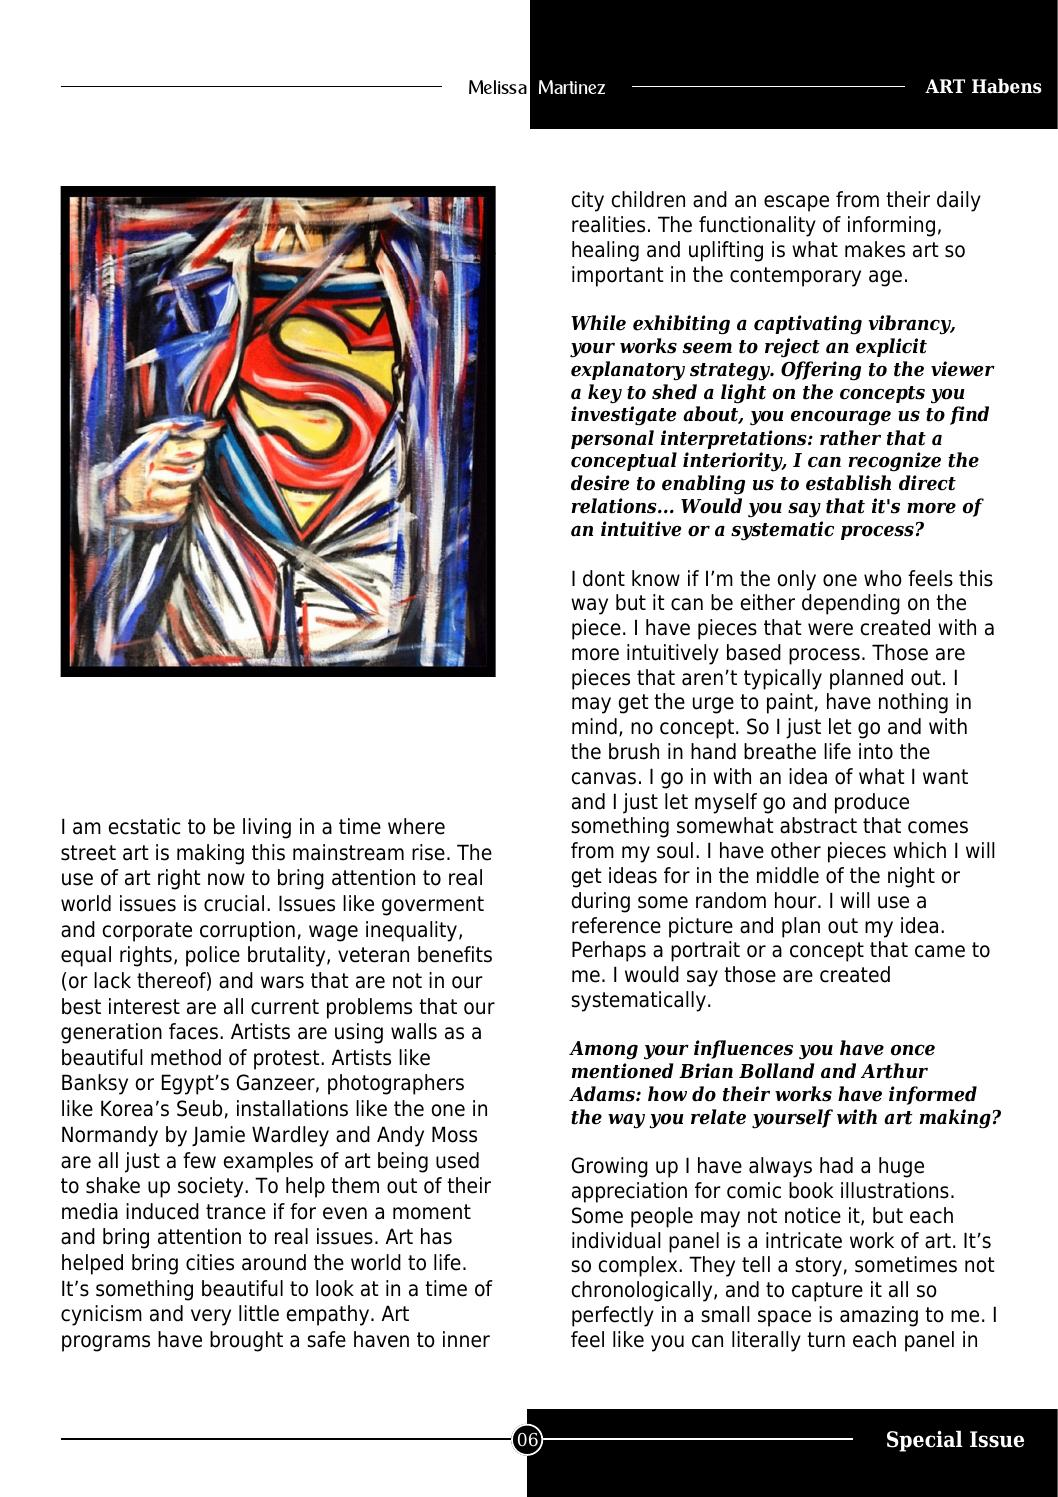 ART Habens Art Review // Special Edition // September 2015 by ART